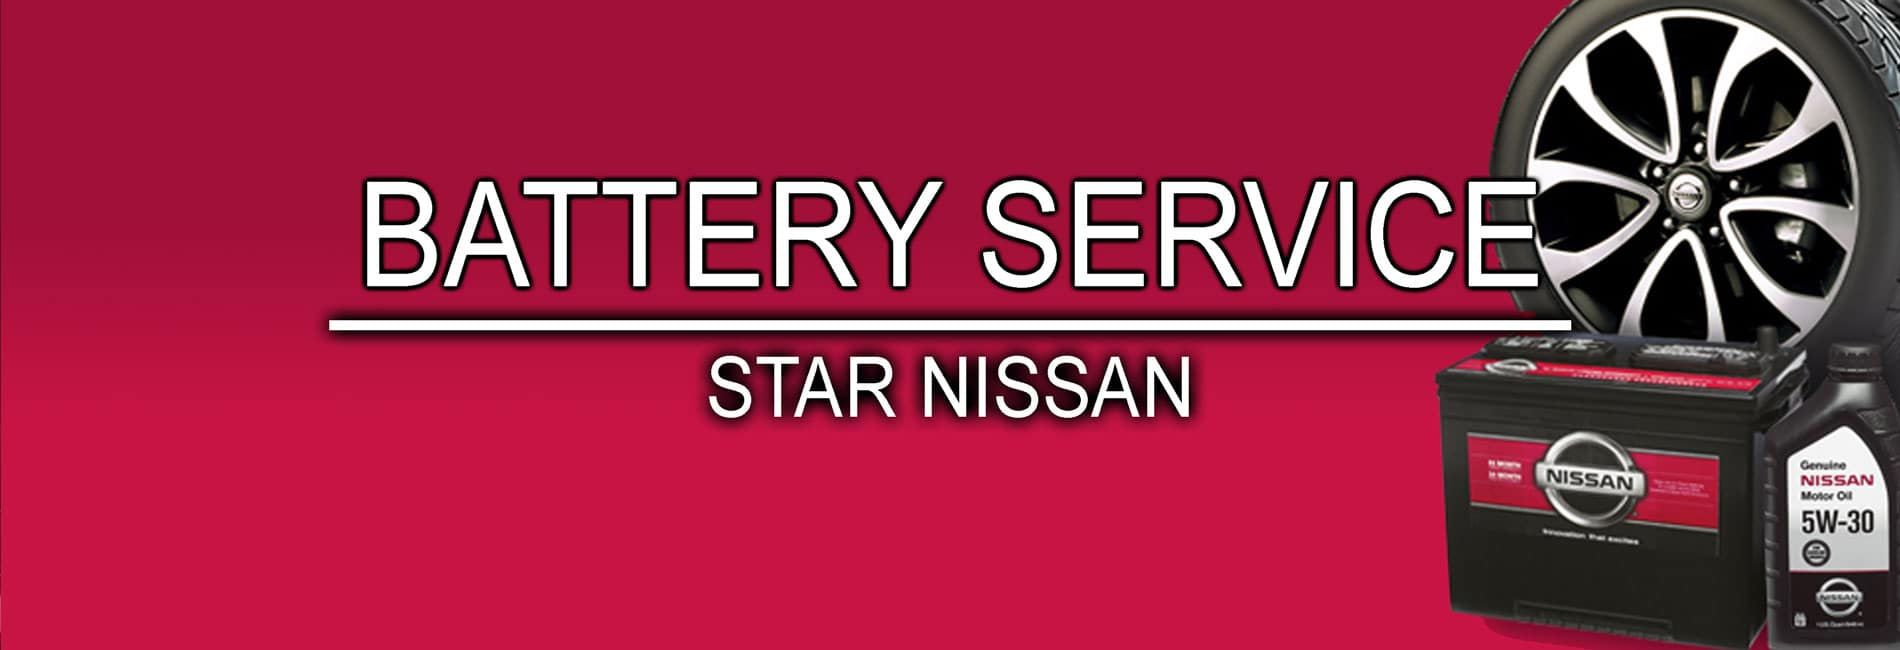 Niles Battery Service at Star Nissan